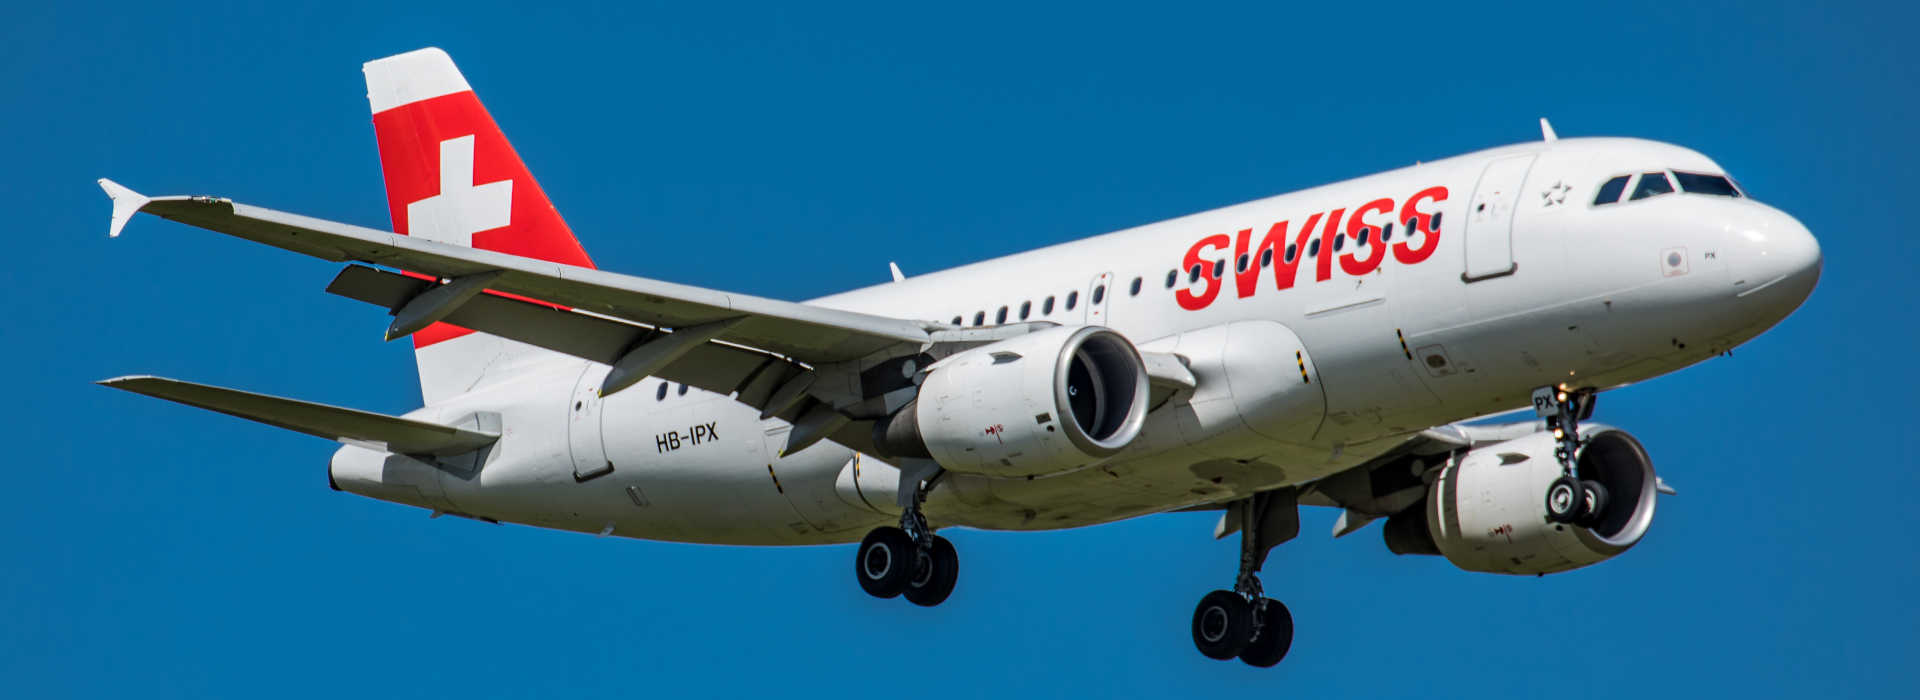 Zurich, Switzerland - August 26, 2018: An Airbus A319-111 of Swiss International Airlines approaching Runway 14 of Zurich Airport. The aircraft with registration HB-IPX was delivered to Swissair on 23rd August 1996. Due to financial problems, this ceased operations in 2002. The aircraft was then taken over by the then newly founded Swiss International Airlines on March 31, 2002.